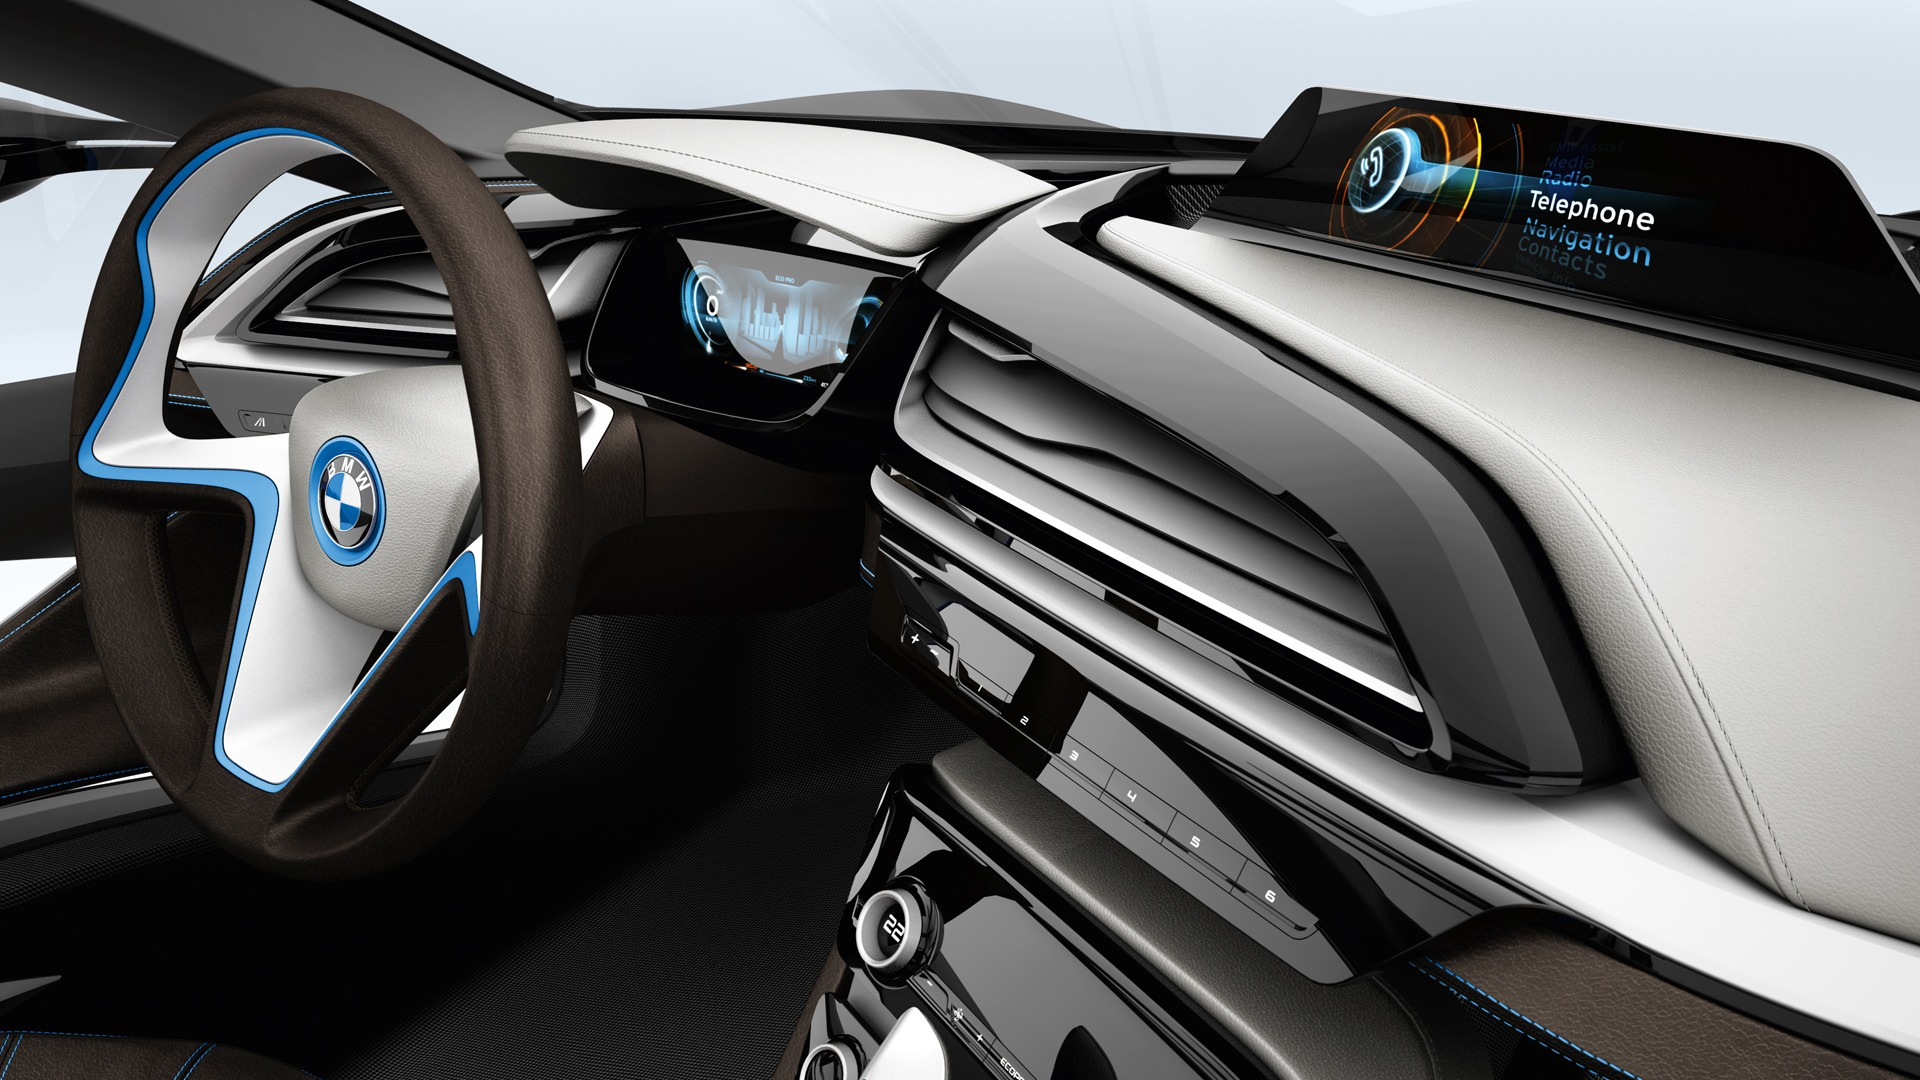 bmw i8 concept 2011 hd wallpapers 36 1920x1080 wallpaper download bmw i8 concept 2011. Black Bedroom Furniture Sets. Home Design Ideas